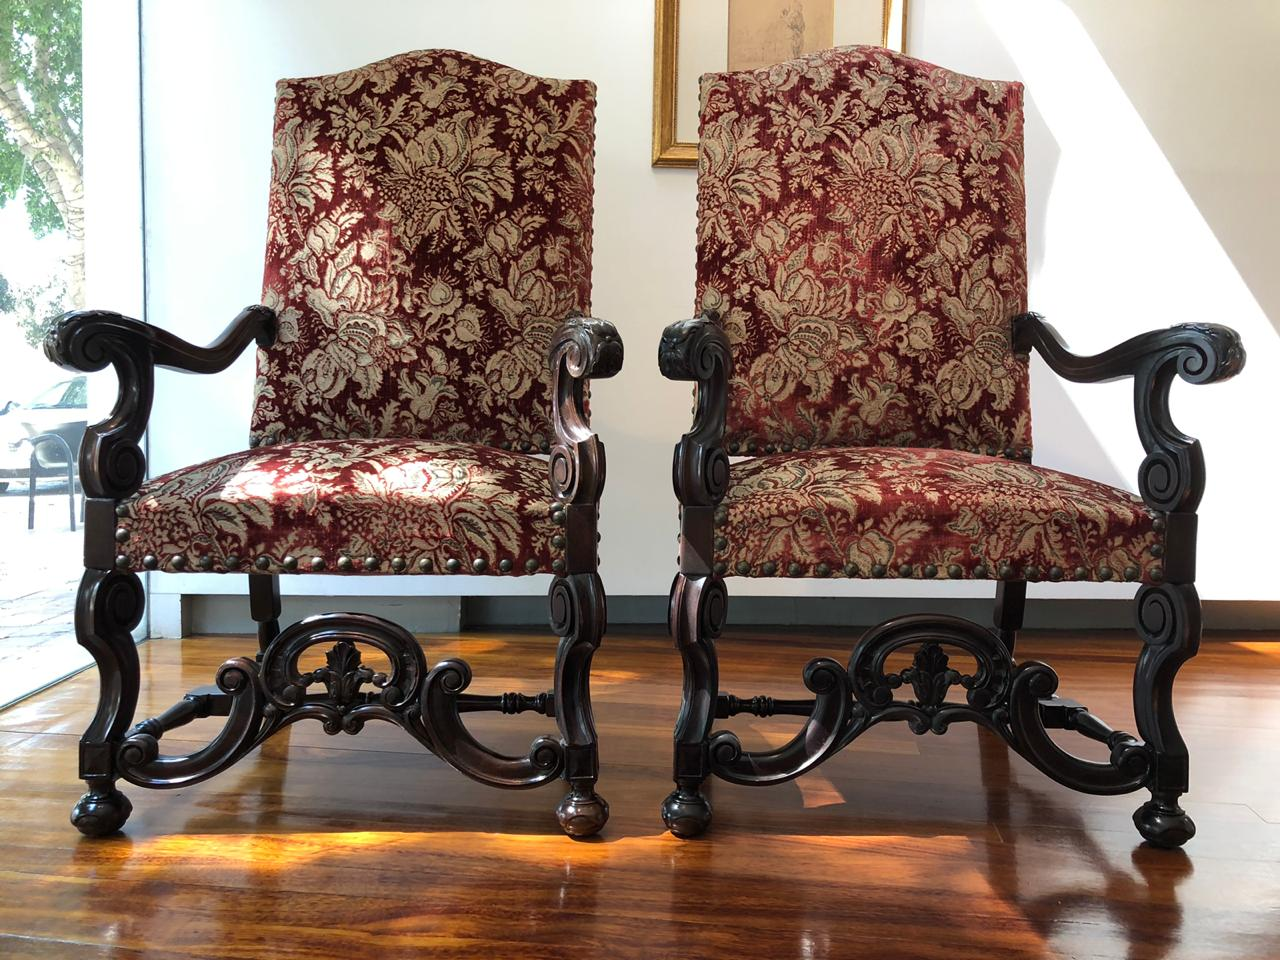 Pair of Throne Chairs | 19th Century